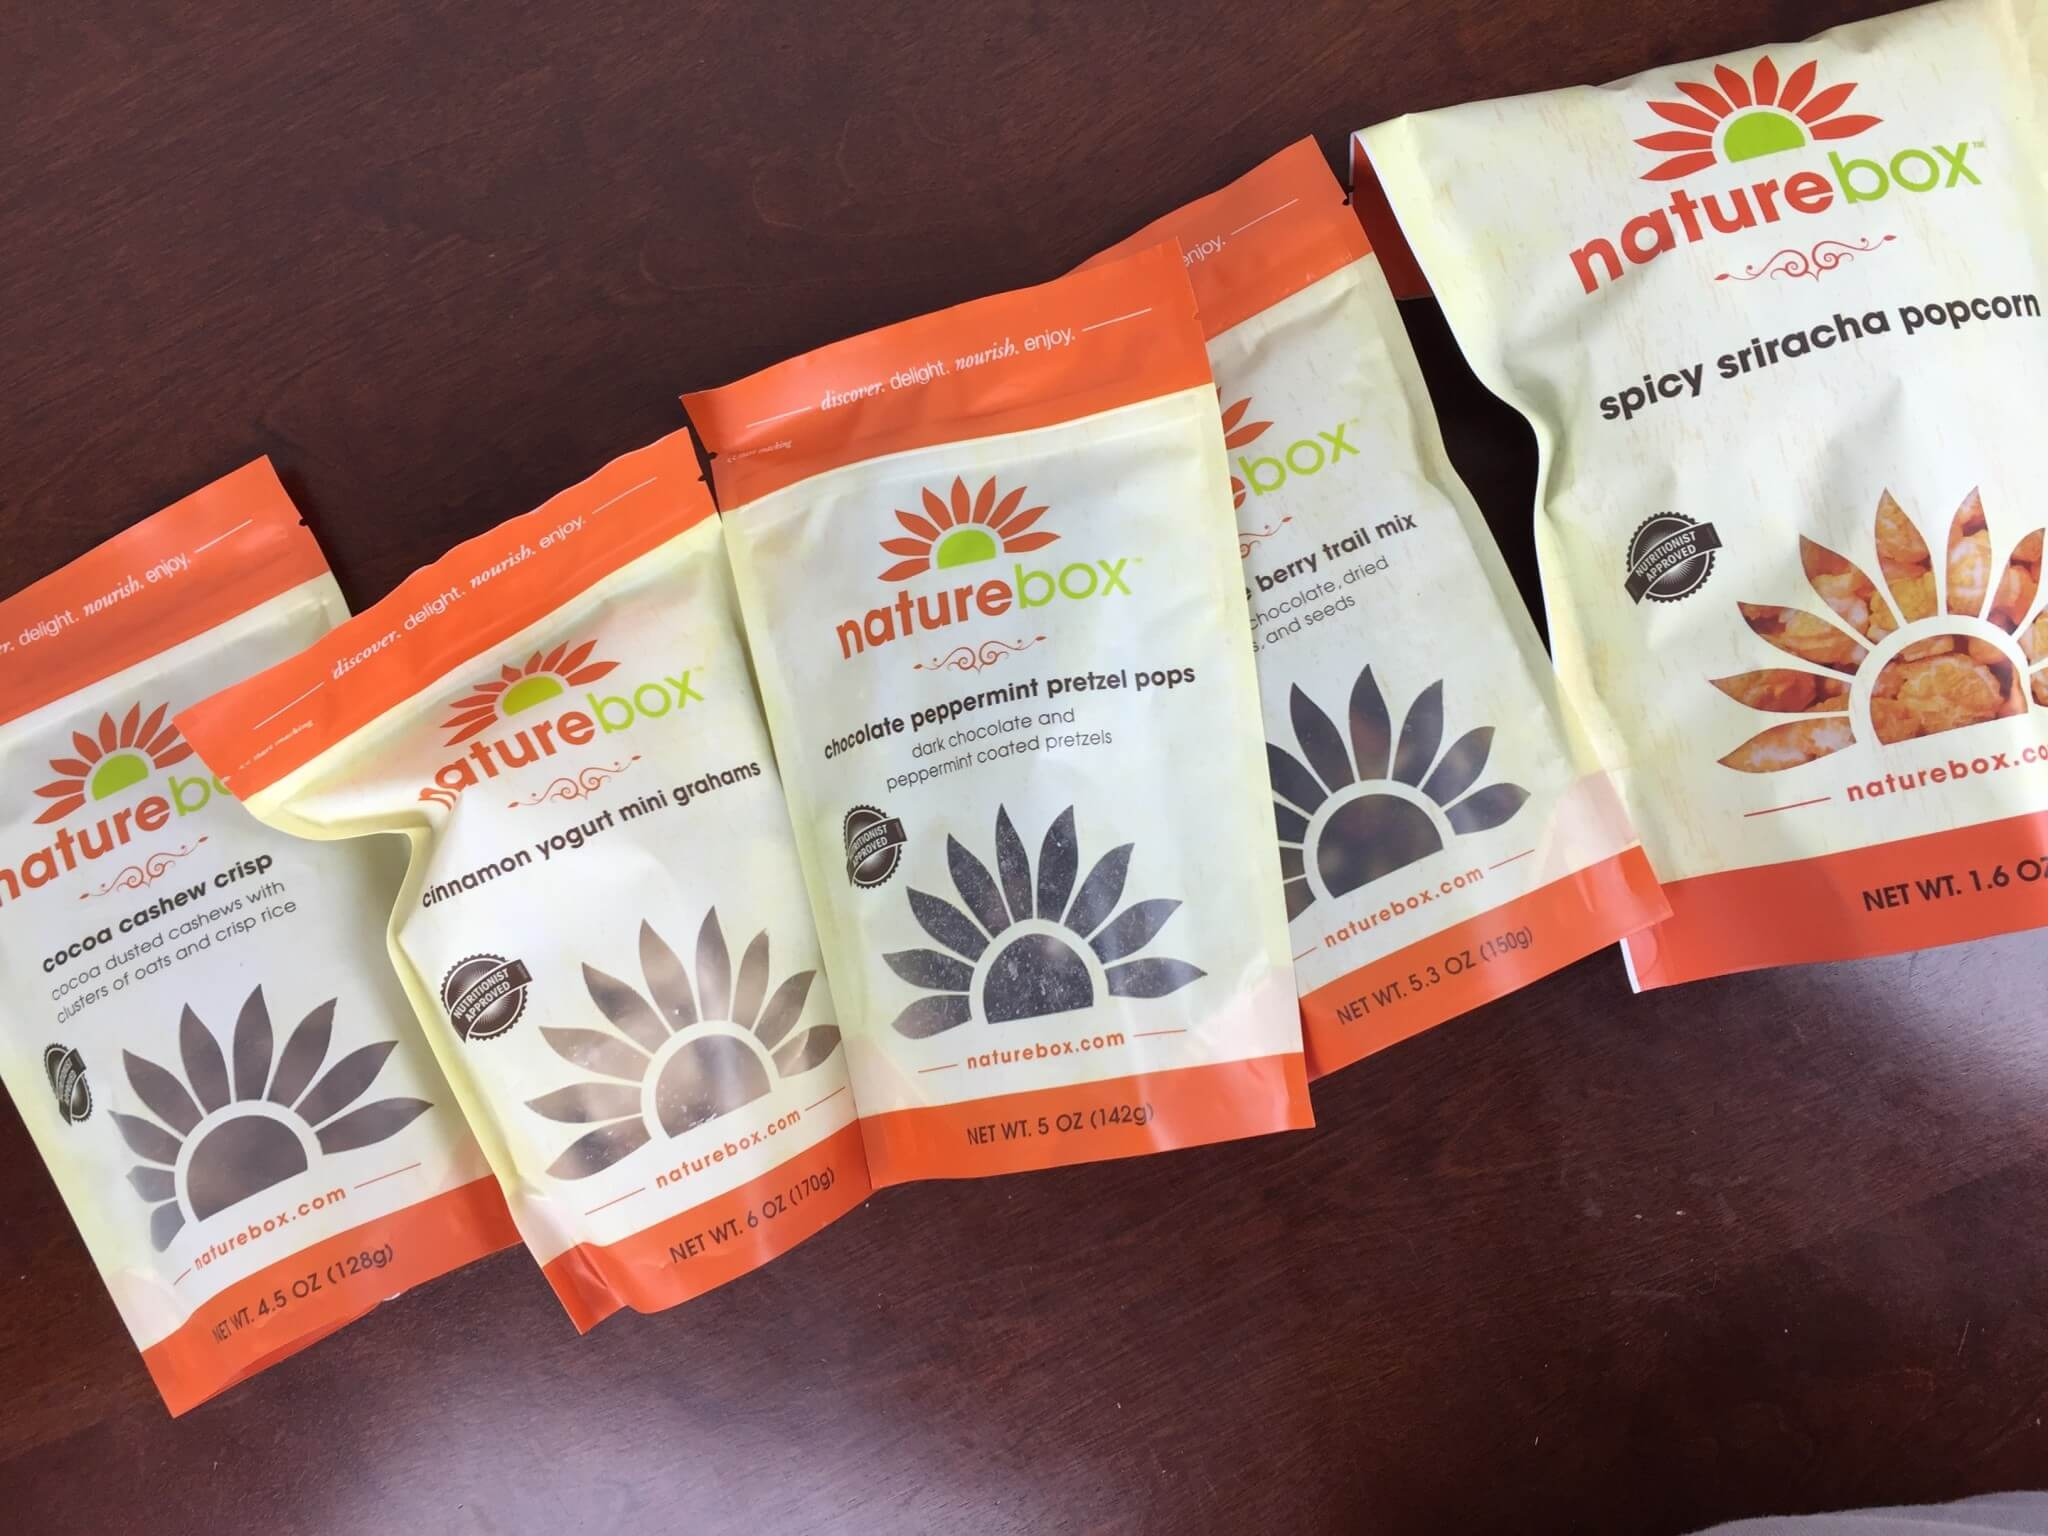 NatureBox January 2016 Subscription Box Review & 50% Off Coupon